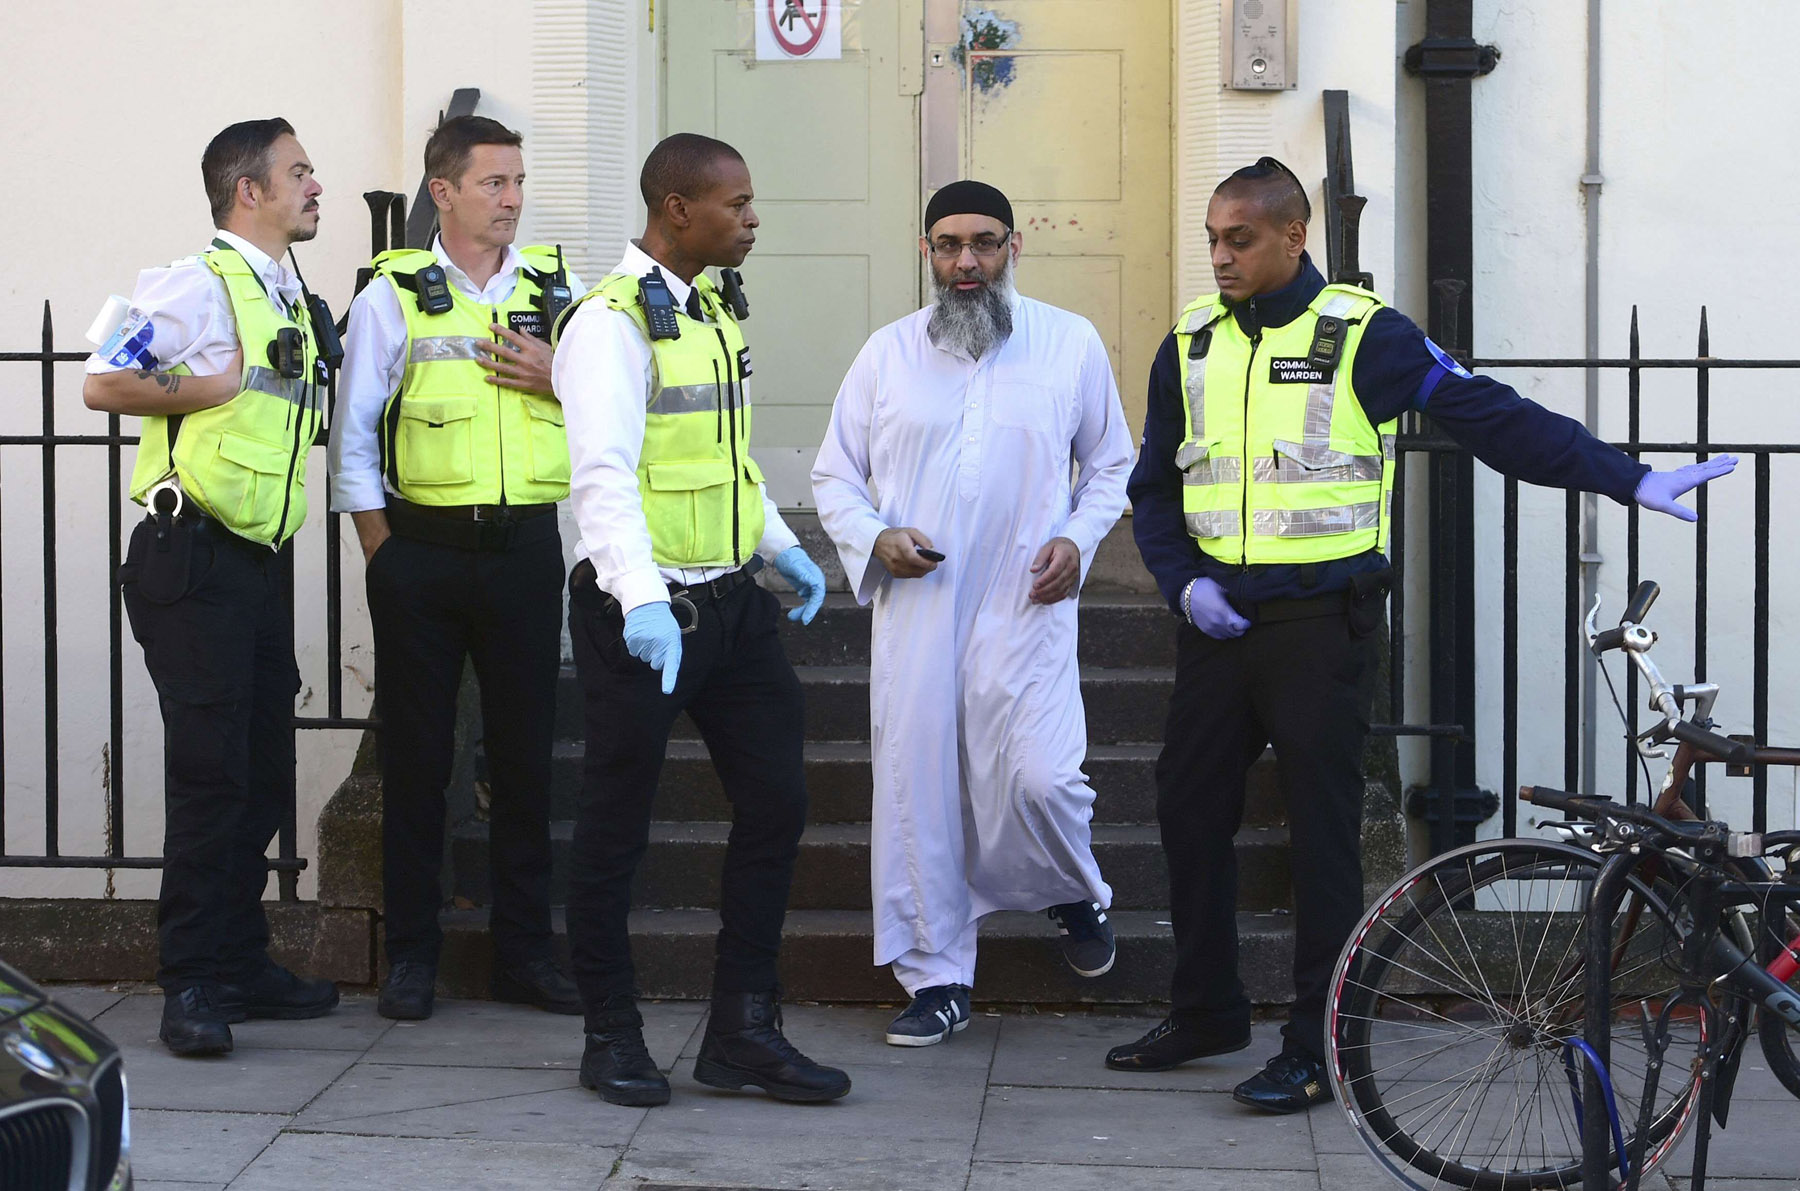 Anjem Choudary leaves a bail hostel in northern London after his release from Belmarsh Prison, on October 19. (AP)